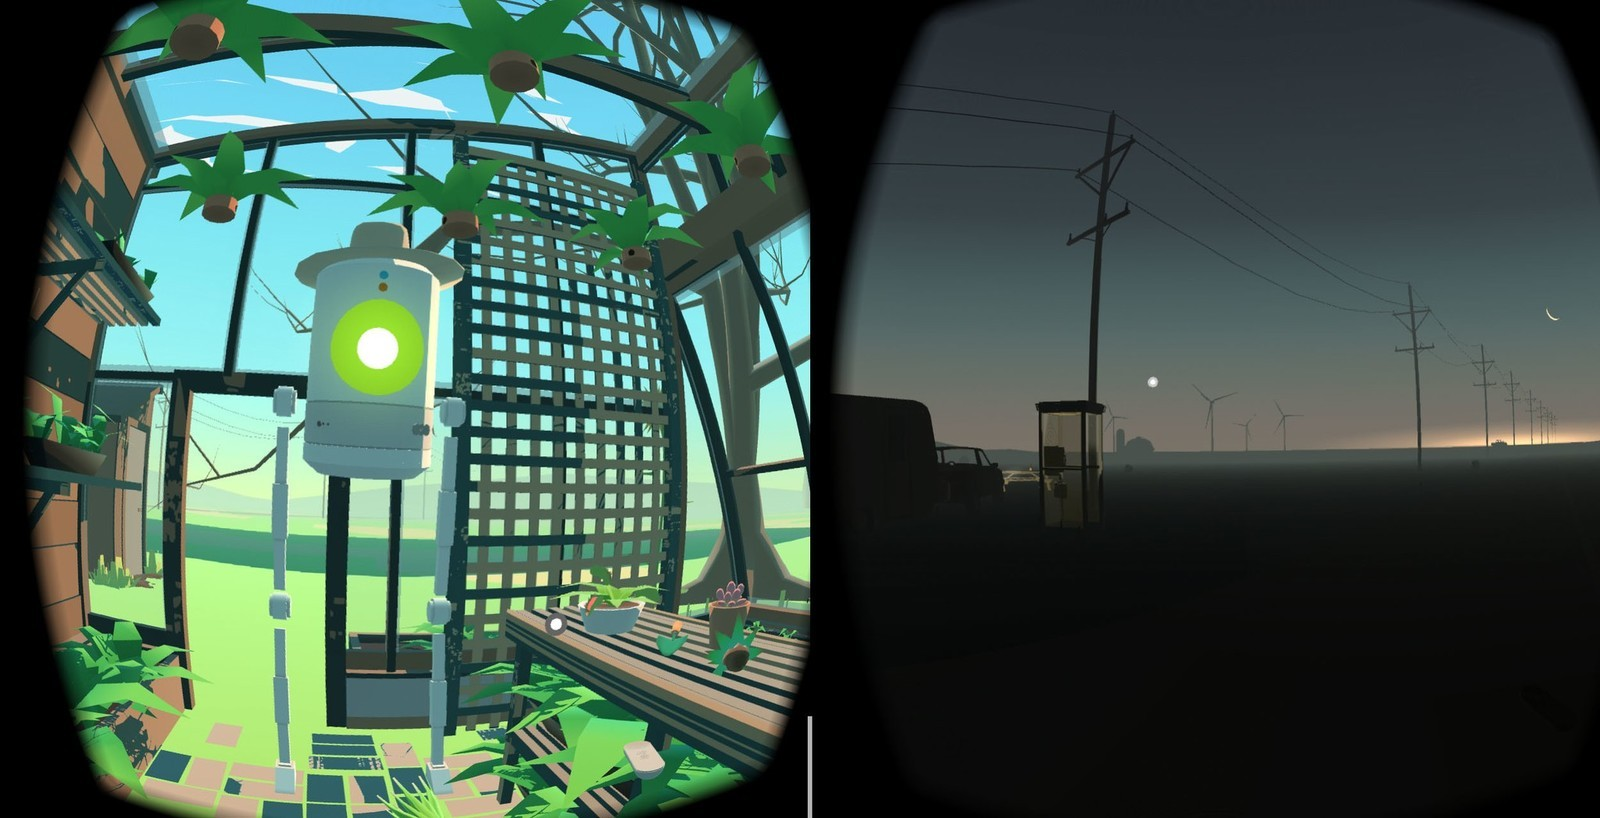 The environments in Virtual Virtual Reality give off an emotive feel